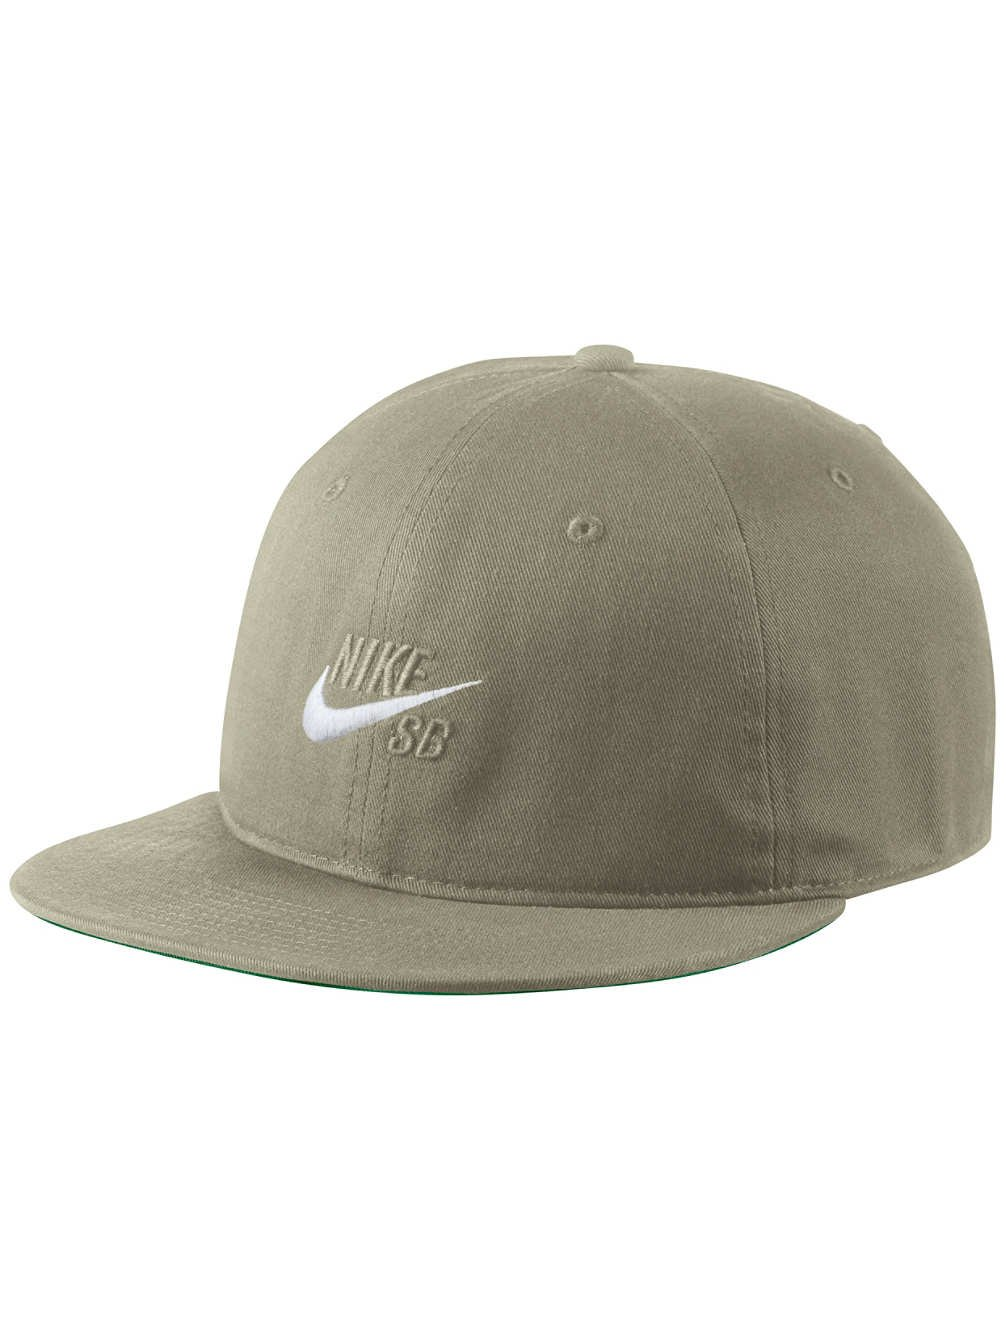 e1aebc5d Amazon.com: Nike SB Pro Vintage Snapback Hat (NEUTRAL OLIVE/PINE  GREEN/NEUTRAL OLIVE): Sports & Outdoors